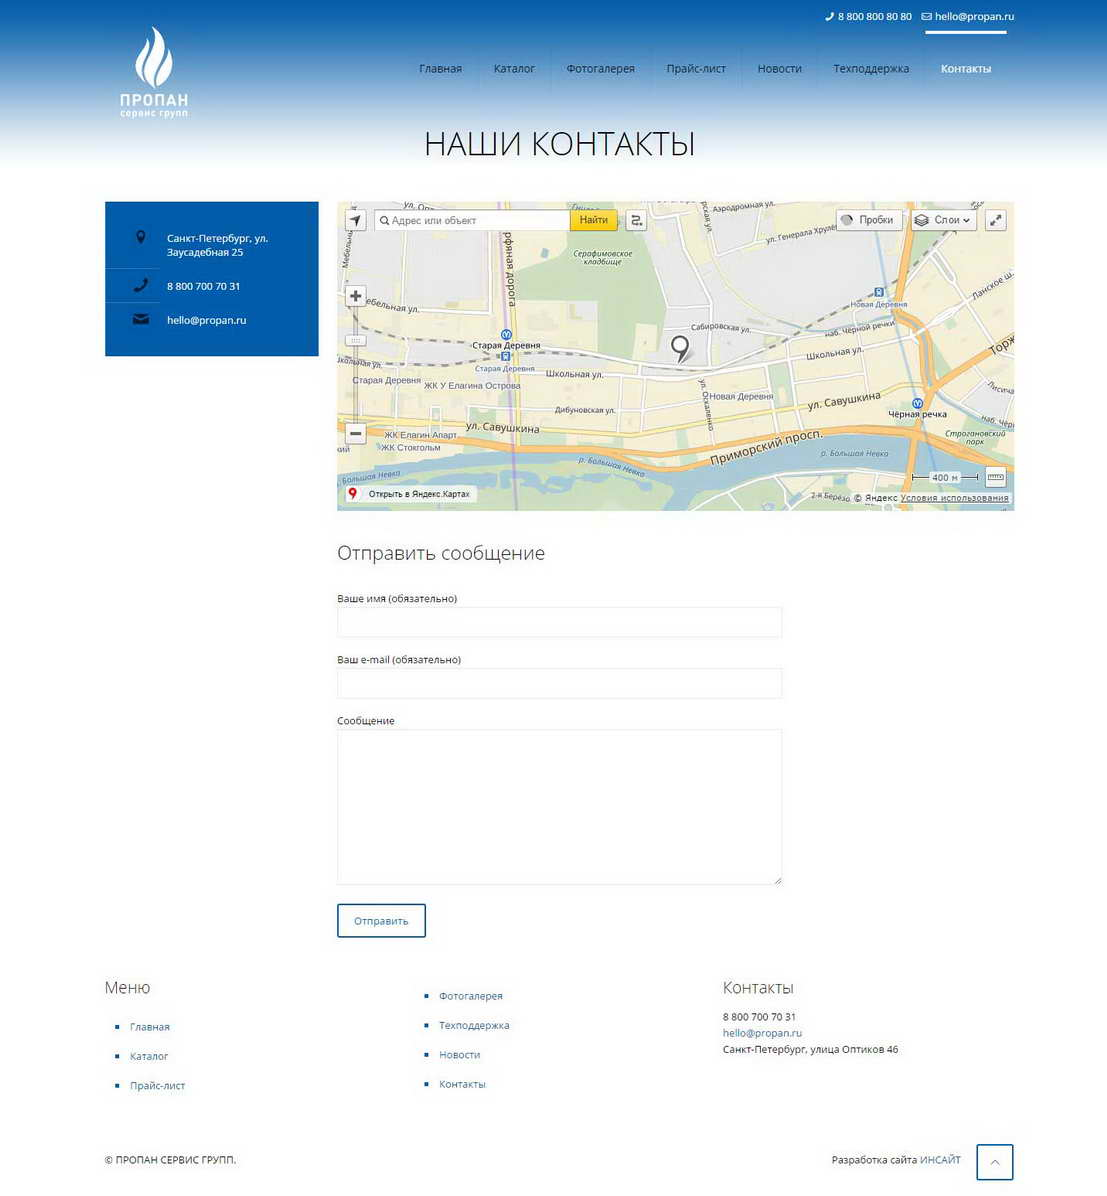 Programmierung Website PROPANE SERVICE GROUP Kontakte